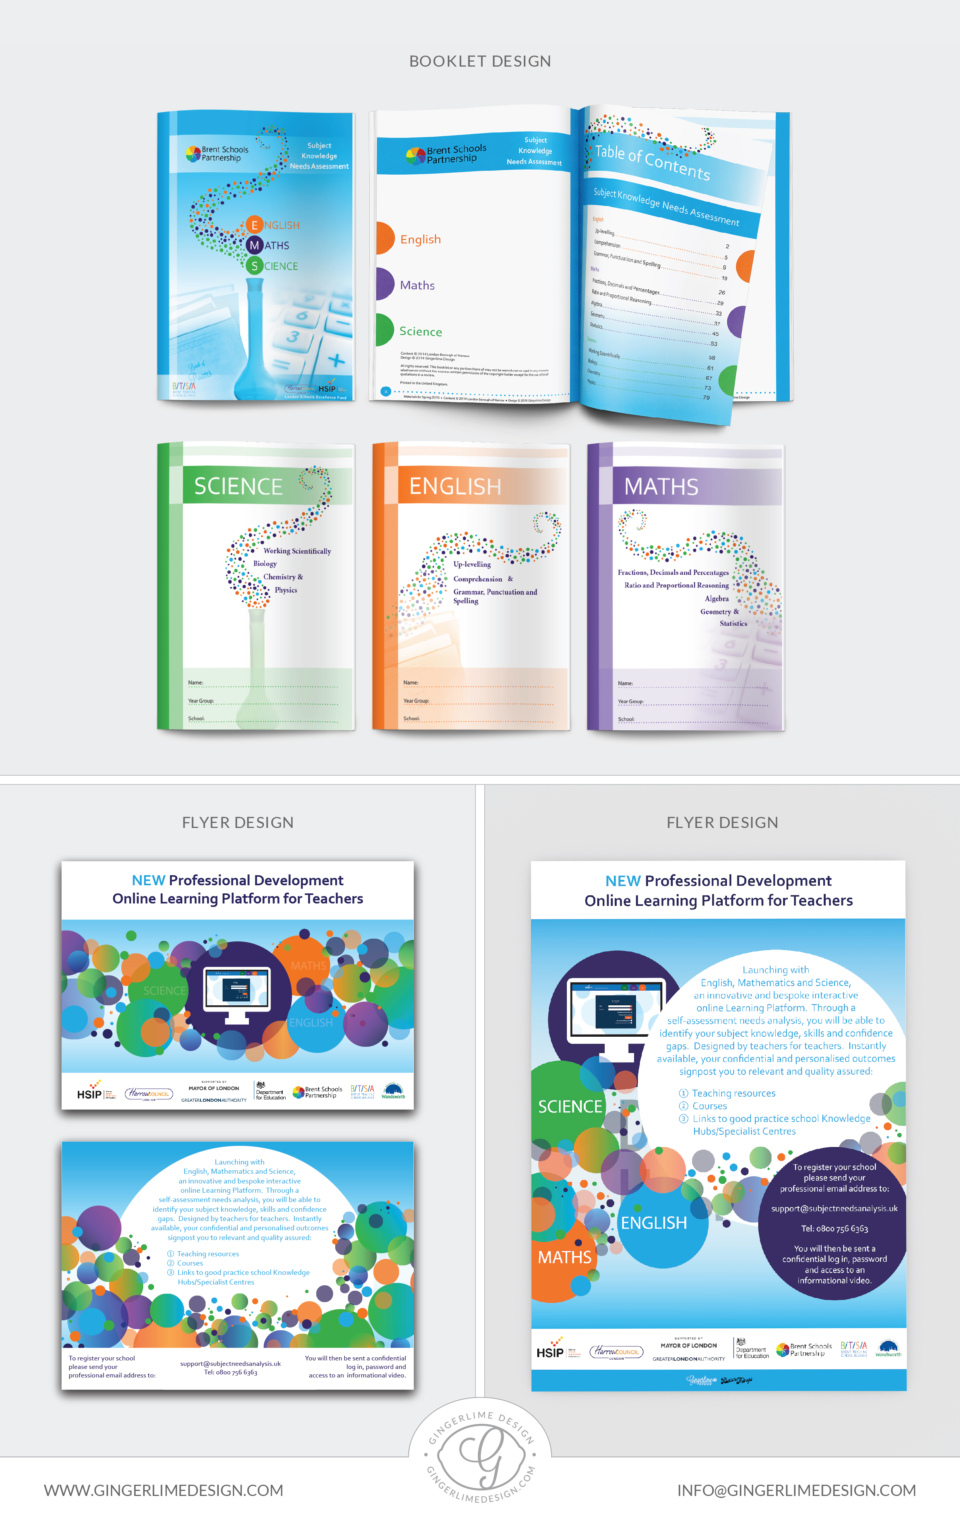 London Schools Excellence Fund Assessment program brochure design by Gingerlime Design